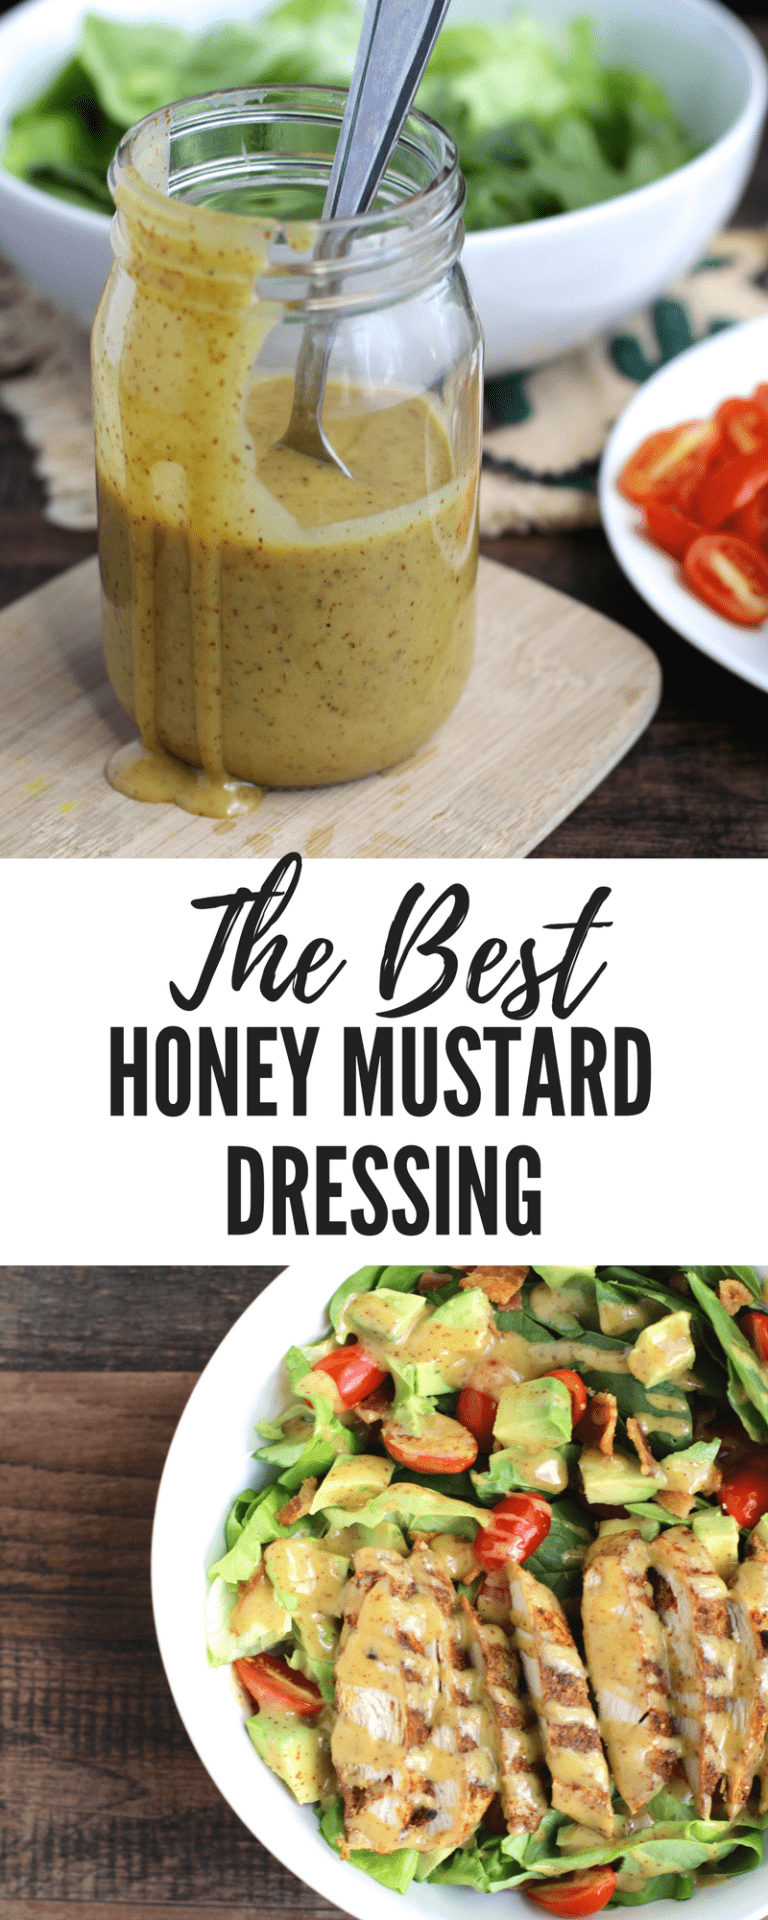 Sweet and Tangy Honey Mustard Dressing